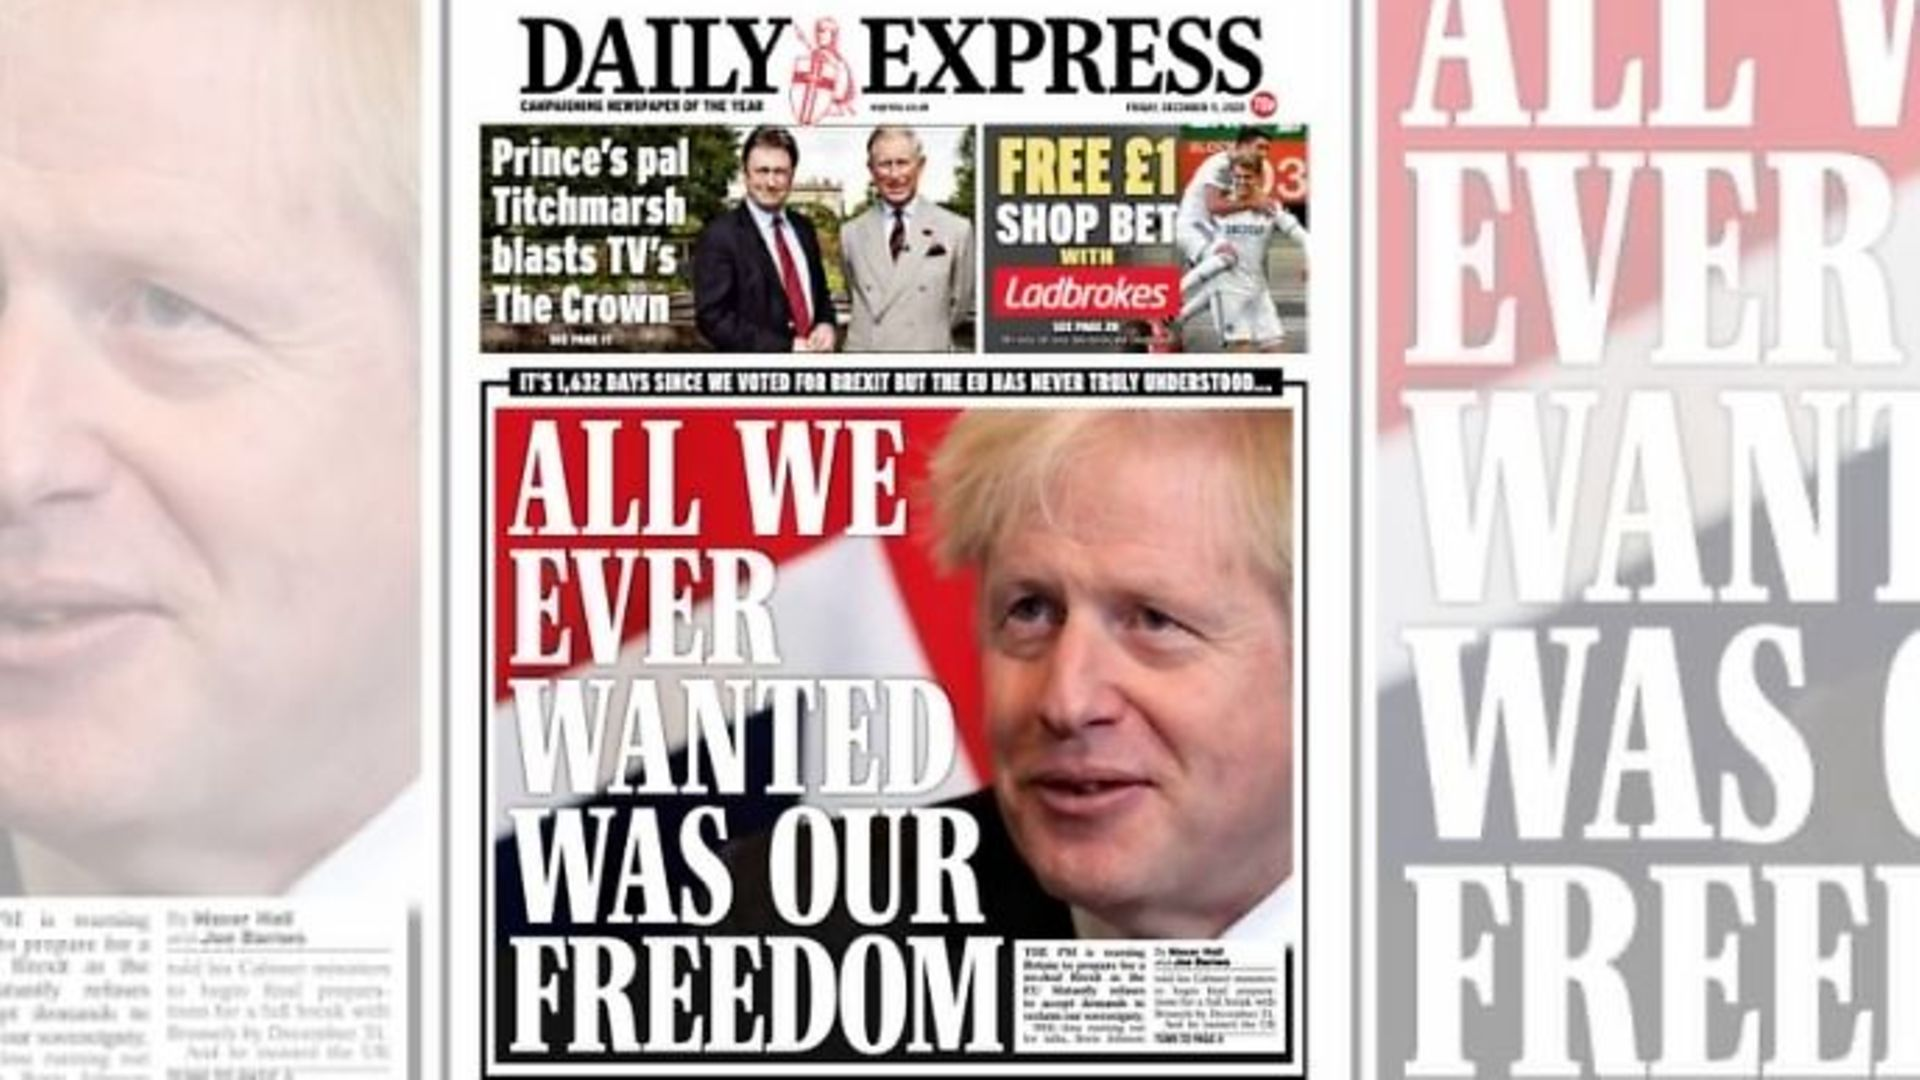 The Daily Express' front cover - Credit: Twitter